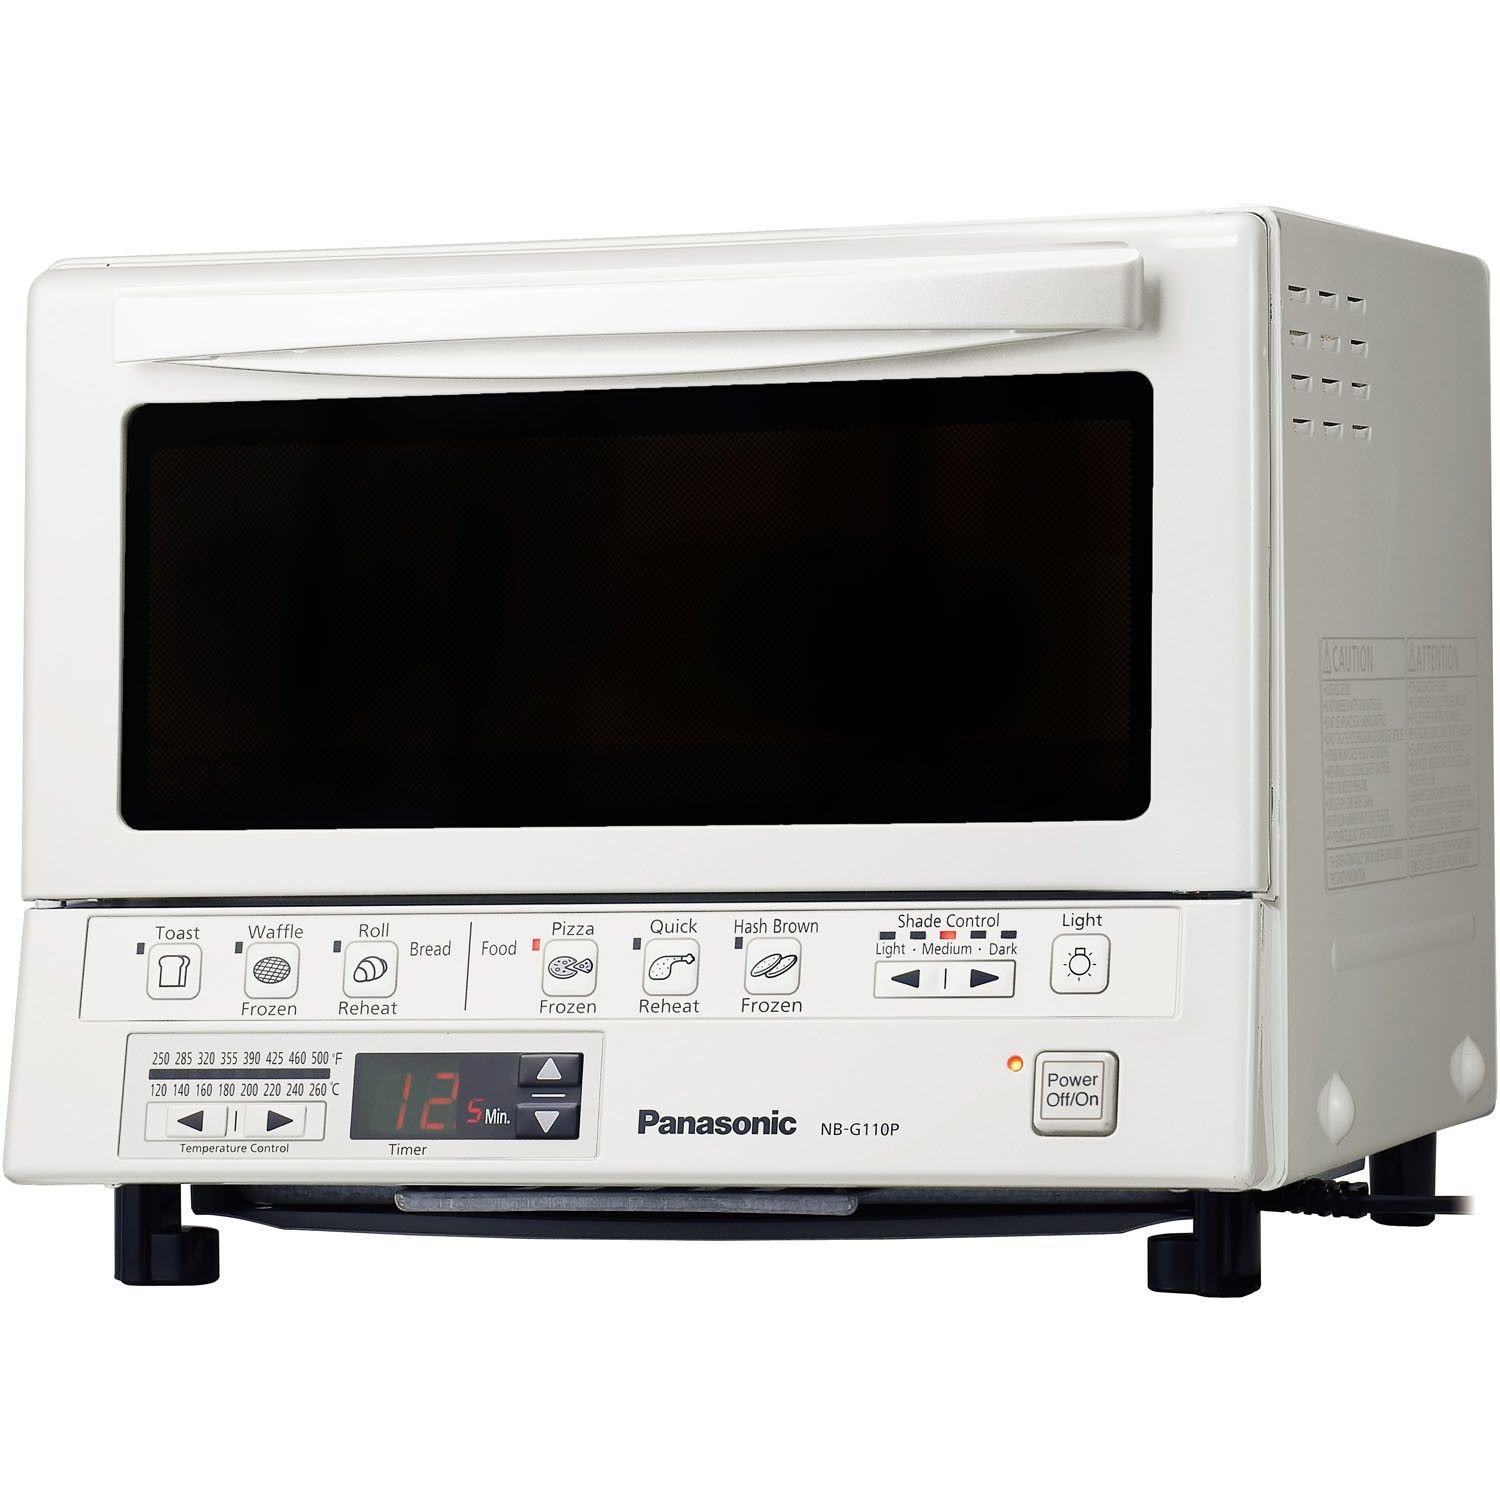 4 Slice Flashxpress Toaster Oven Products Toaster